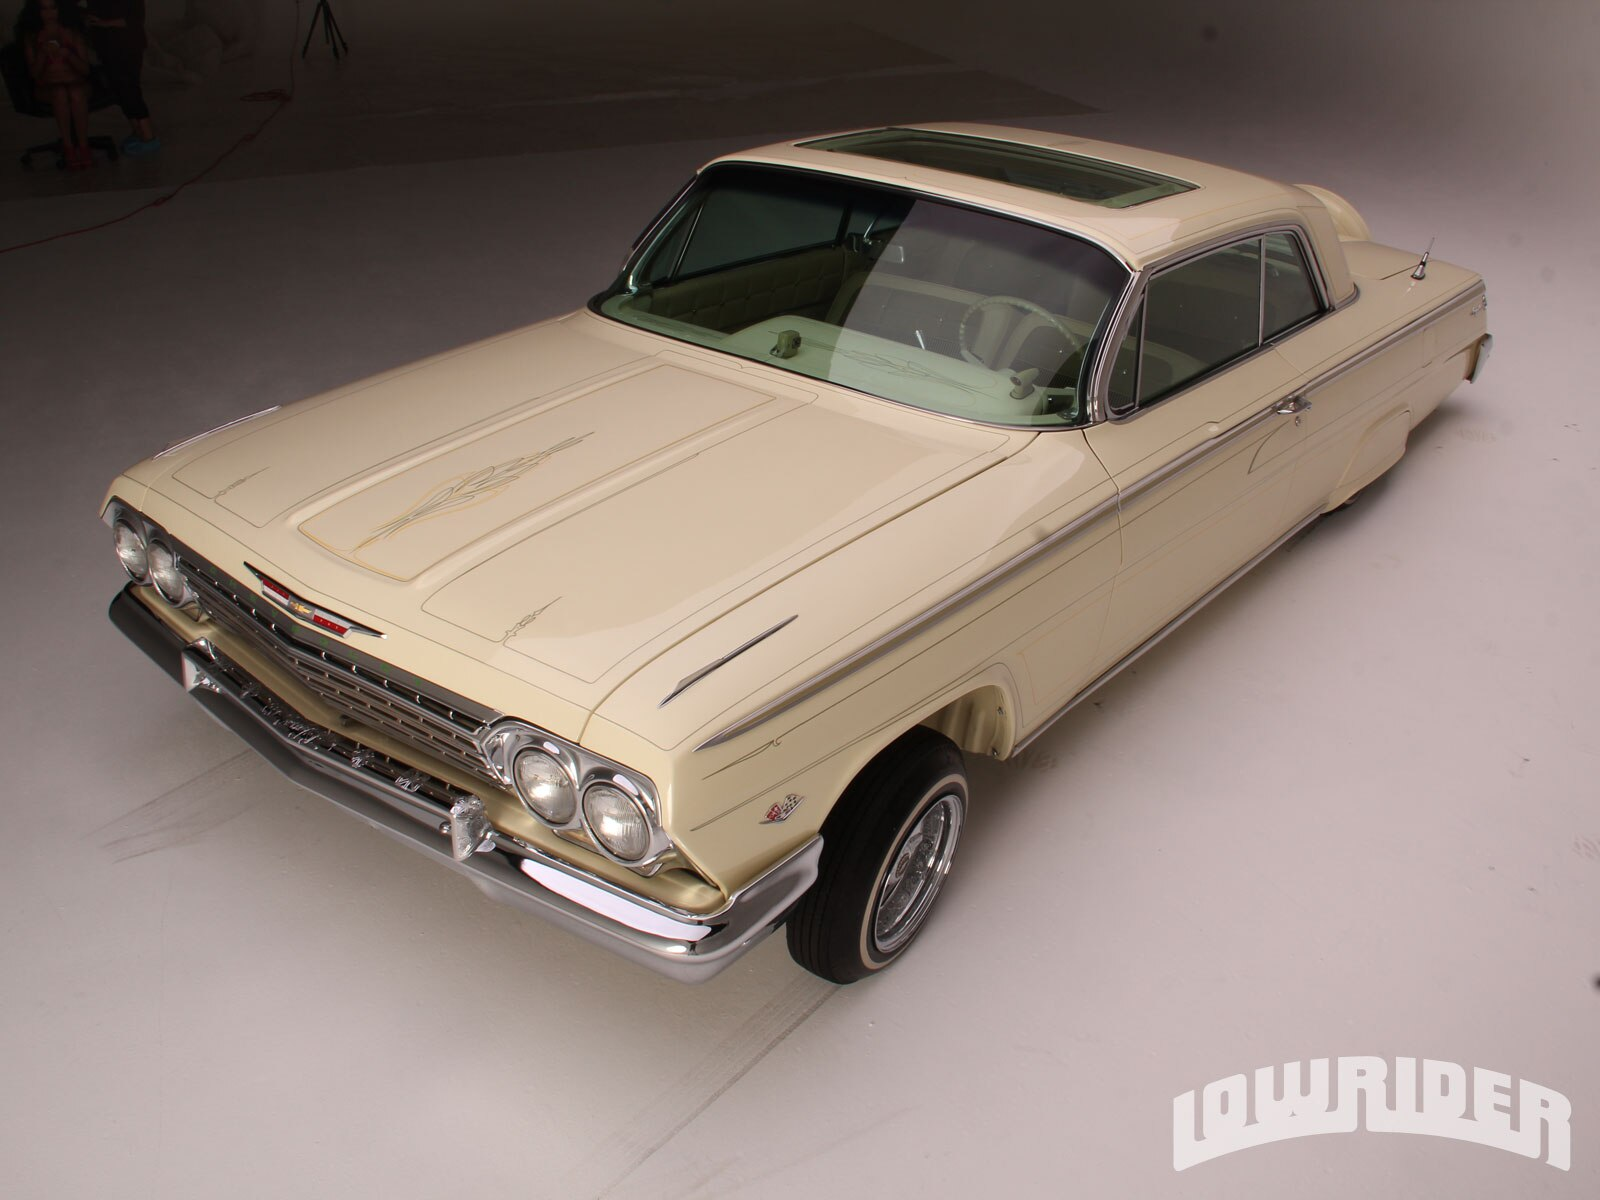 1211-lrmp-33-o-1962-chevrolet-impala-driver-side-front-view1